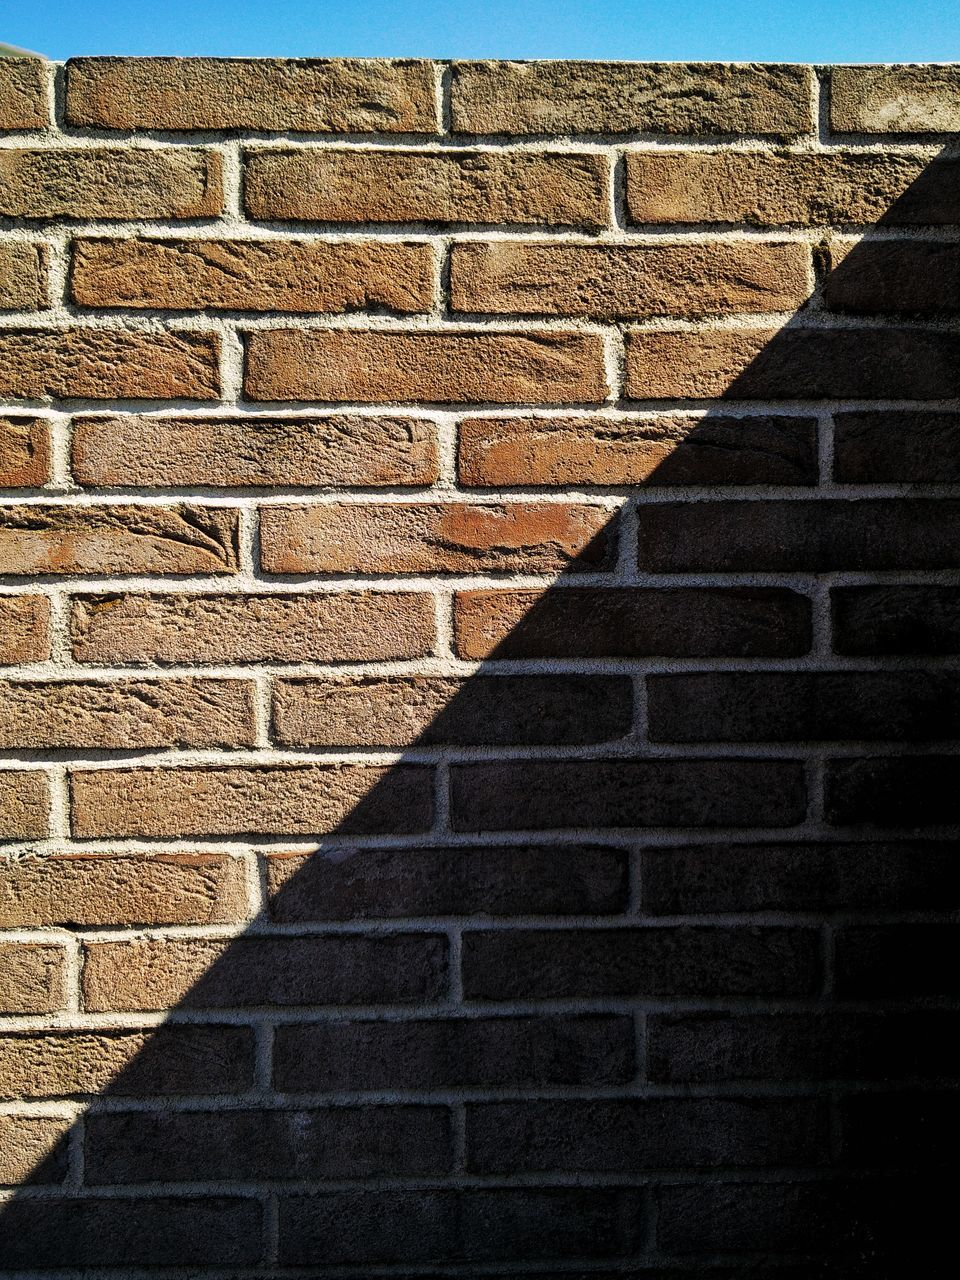 brick wall, wall - building feature, architecture, built structure, building exterior, day, outdoors, textured, no people, city, close-up